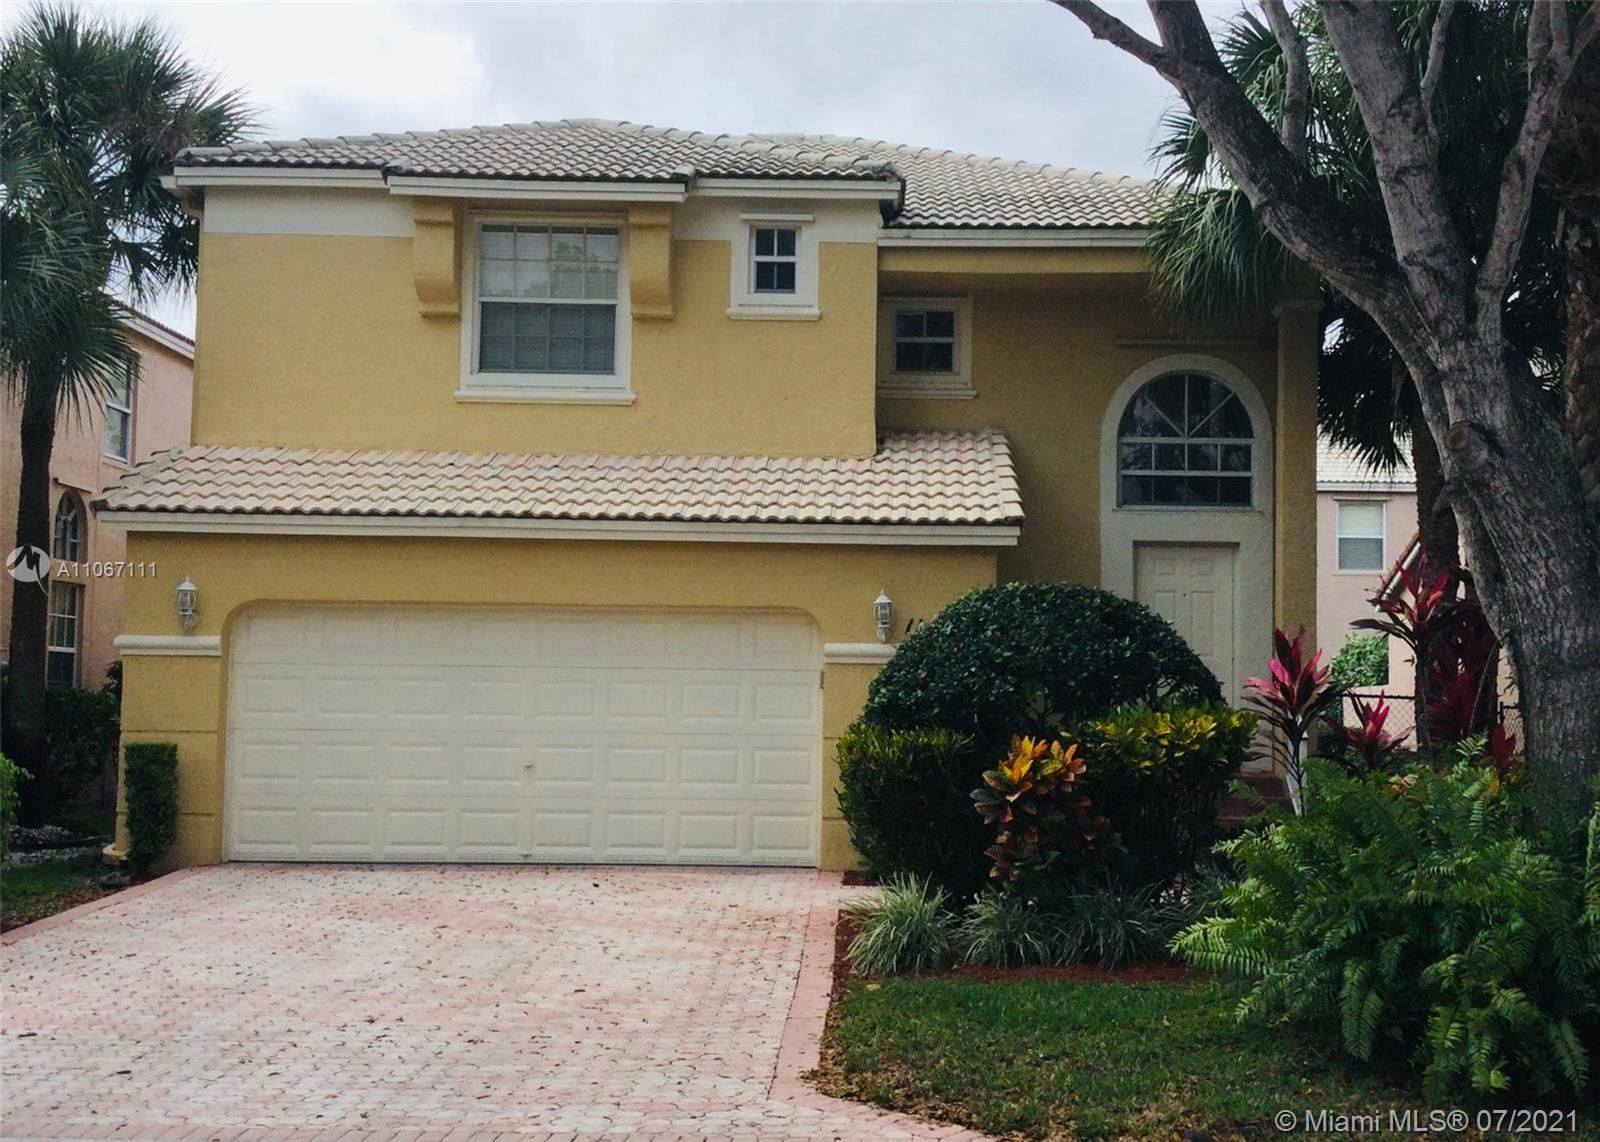 11412 NW 48th Ct, Coral Springs, FL 33076 - #: A11067111